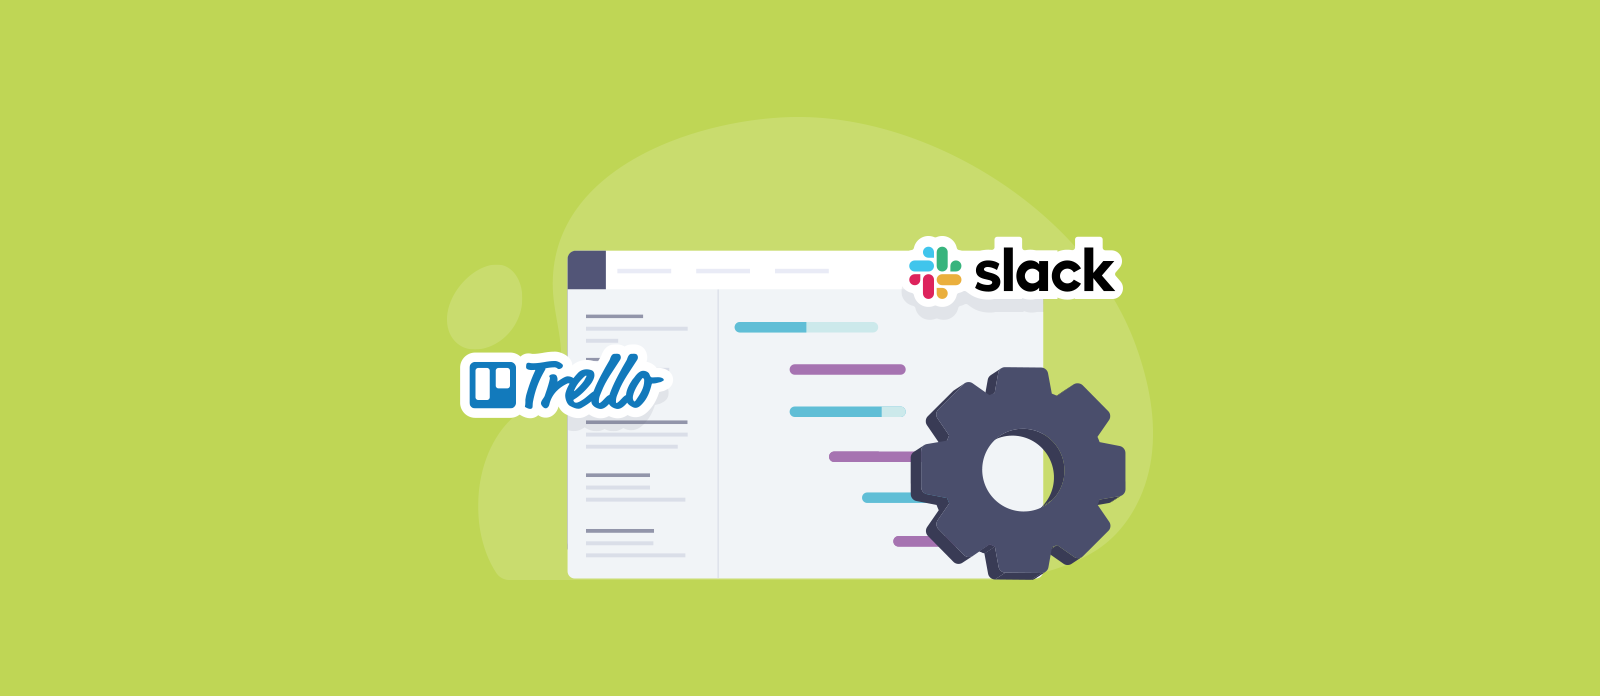 TeamGantt Slack, Trello, and API integrations